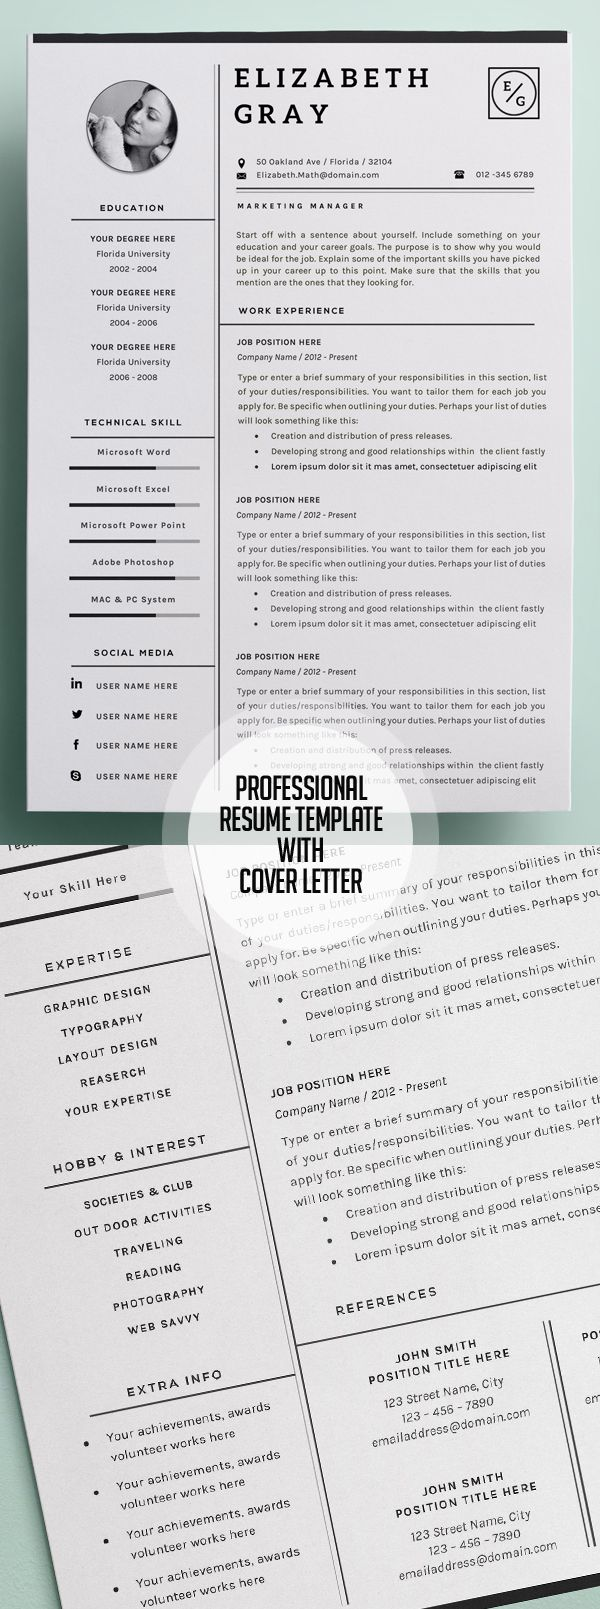 Picnictoimpeachus  Remarkable  Resume Ideas On Pinterest  Resume Resume Templates And  With Lovely Professional And Modern Resume Template With Page Cover Cvtemplate With Amusing Line Cook Resume Sample Also What Do I Put On My Resume In Addition Resume Objectives For Sales And Job Title On Resume As Well As General Manager Resume Sample Additionally Sample Of Objectives For Resume From Pinterestcom With Picnictoimpeachus  Lovely  Resume Ideas On Pinterest  Resume Resume Templates And  With Amusing Professional And Modern Resume Template With Page Cover Cvtemplate And Remarkable Line Cook Resume Sample Also What Do I Put On My Resume In Addition Resume Objectives For Sales From Pinterestcom